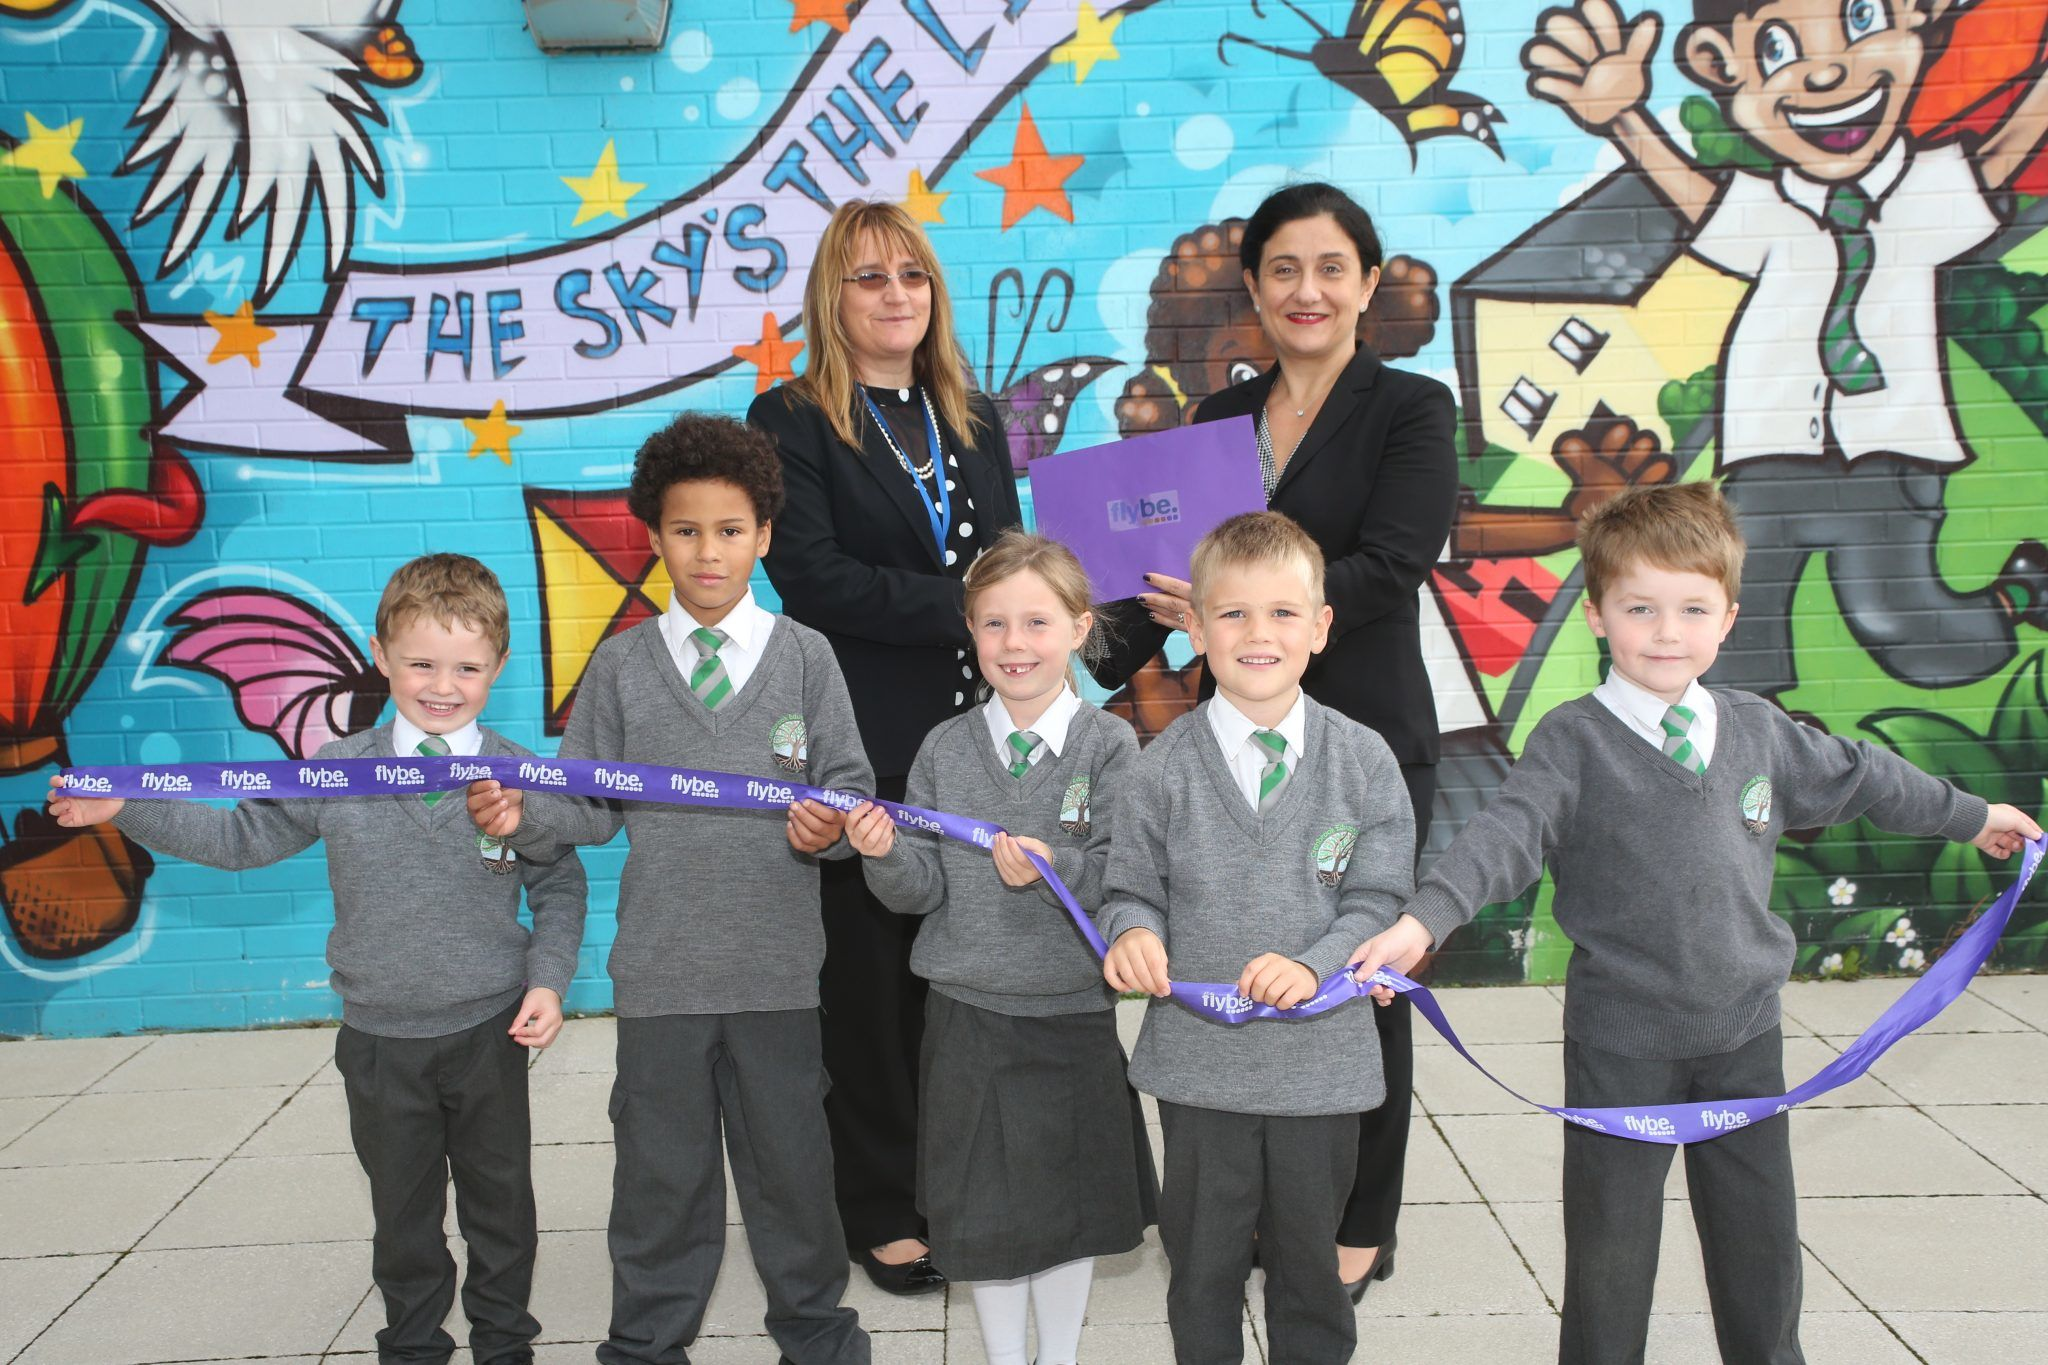 FLYBE STARTS NEW CHAPTER WITH LOCAL SCHOOL